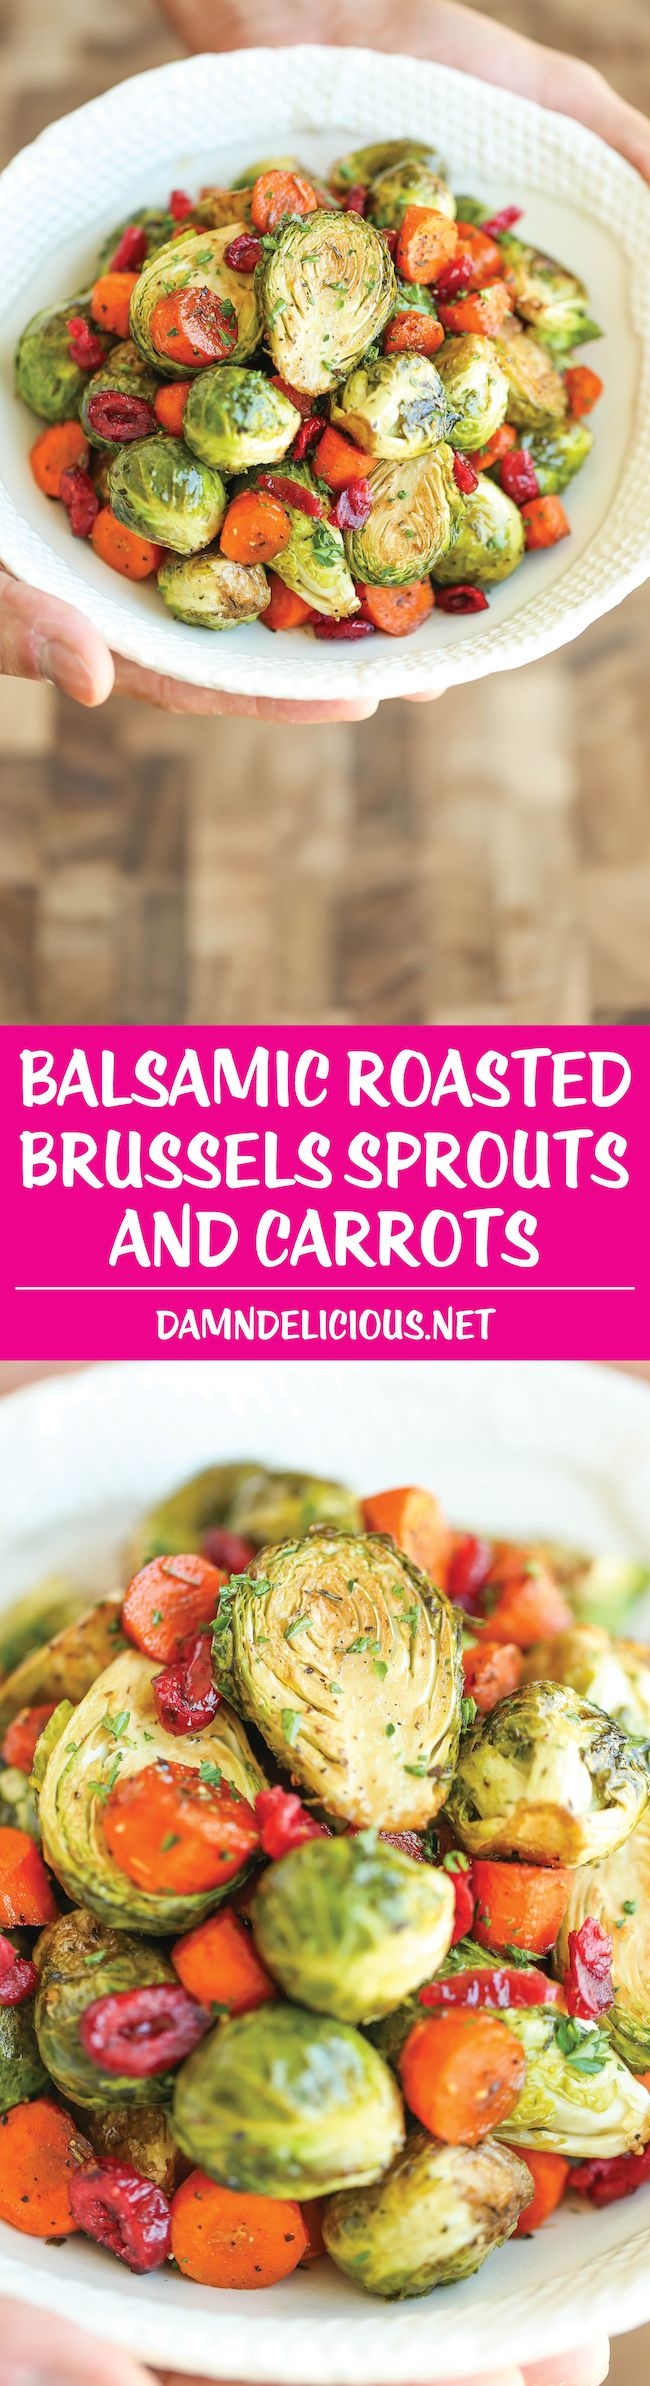 Balsamic Roasted Brussels Sprouts and Carrots - Golden brown, crisp brussels sprouts and carrots tossed in balsamic vinegar and maple syrup. (Holiday cooking recipes, ideas, Christmas dinner, side dish)